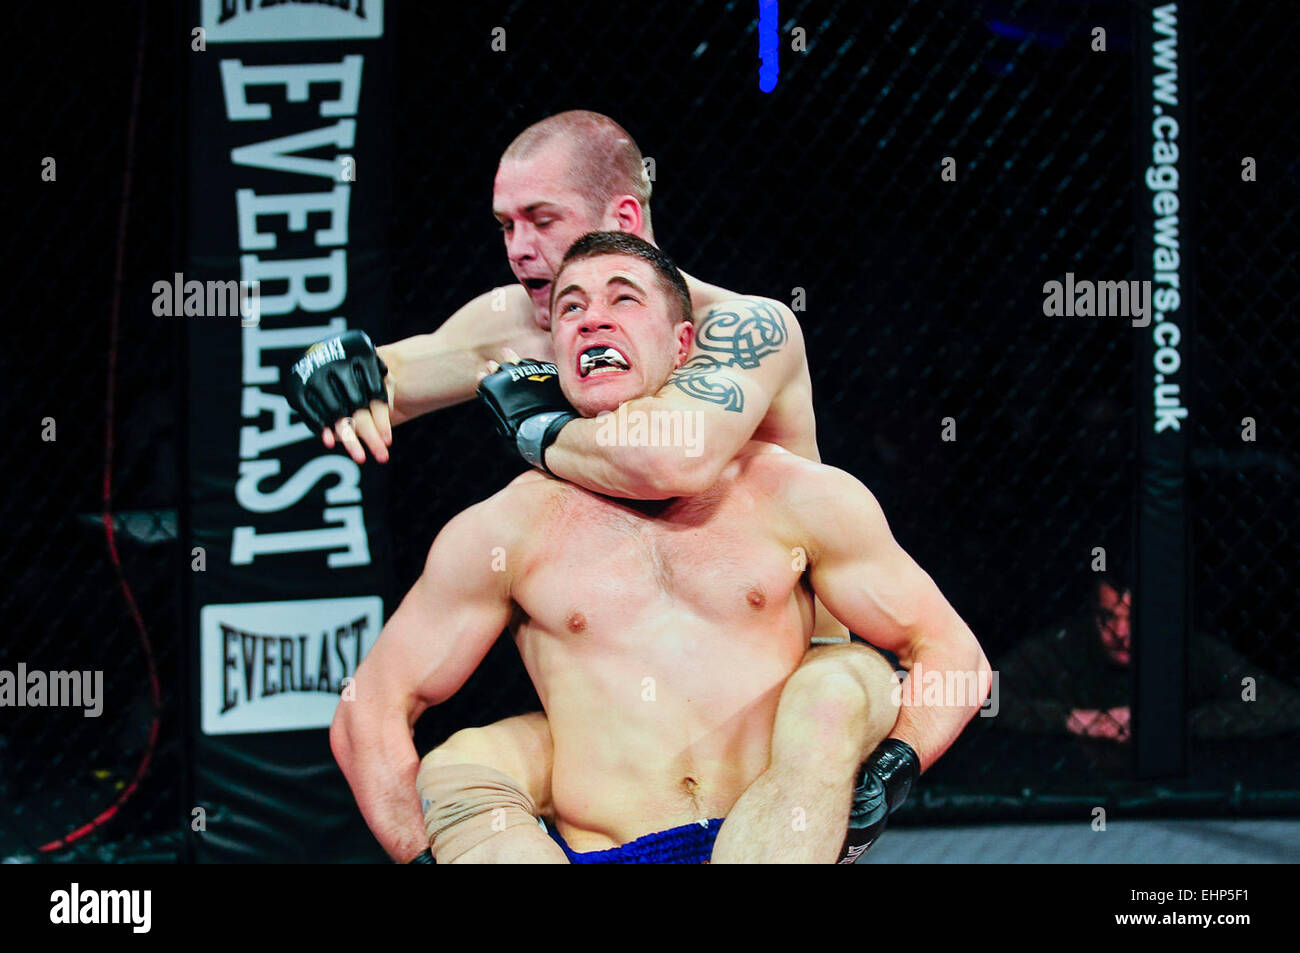 MMA cage fighter puts his opponent into a choke hold with his arm around the neck. - Stock Image